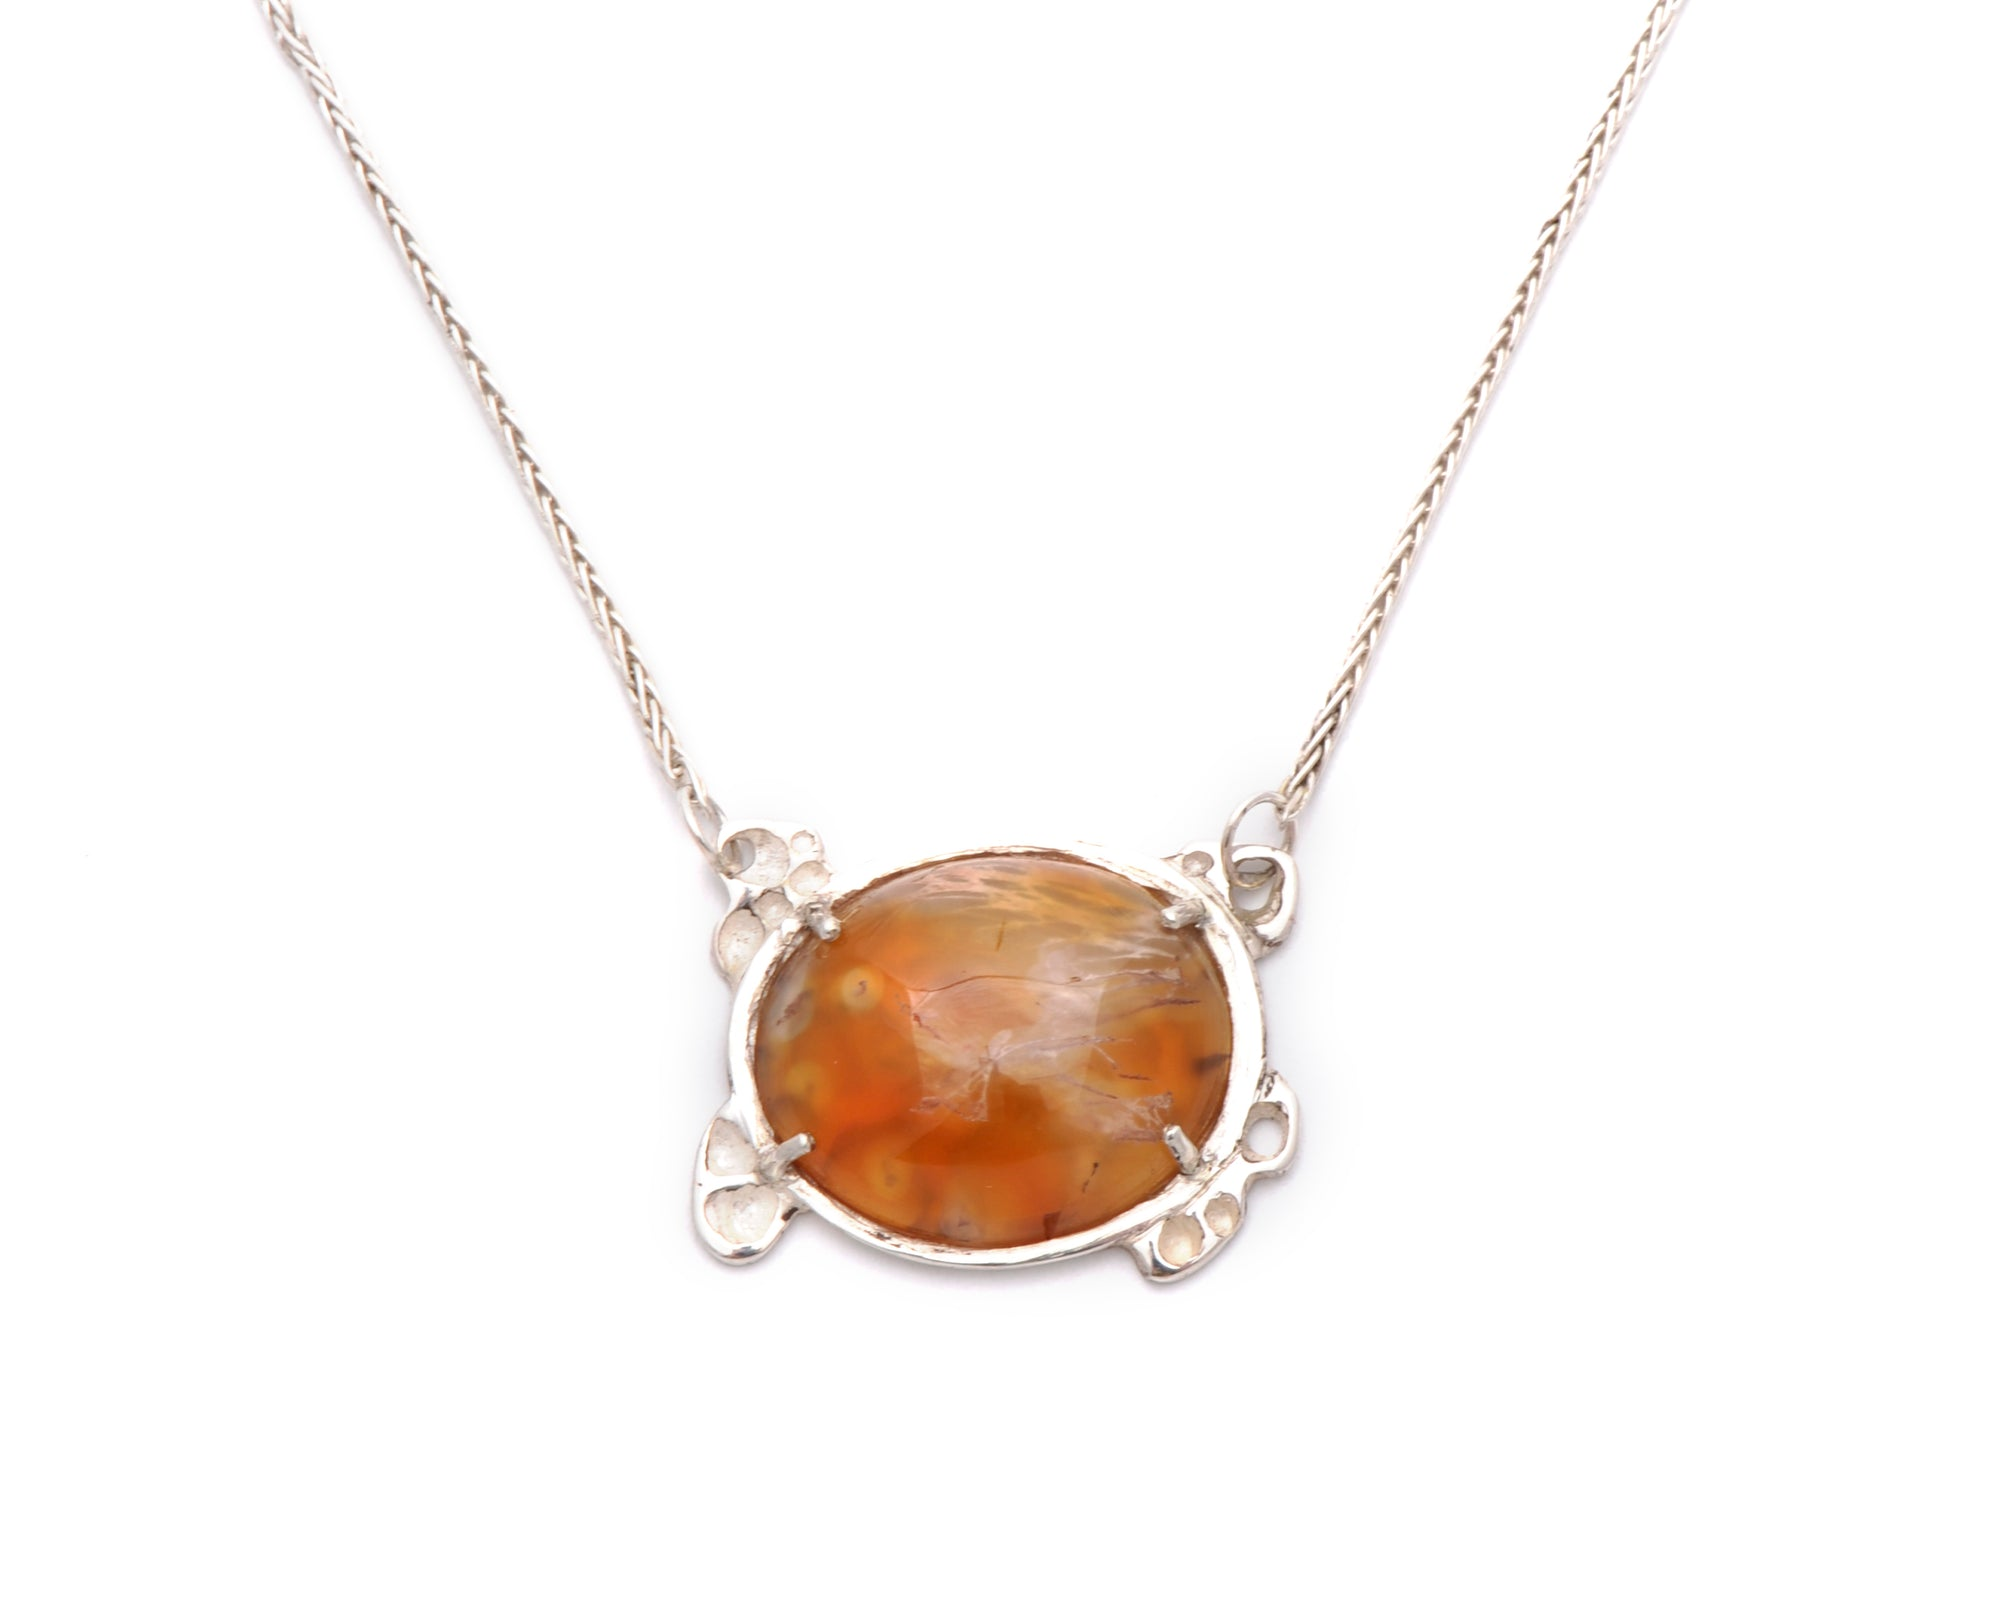 Agate Honeycomb Necklace